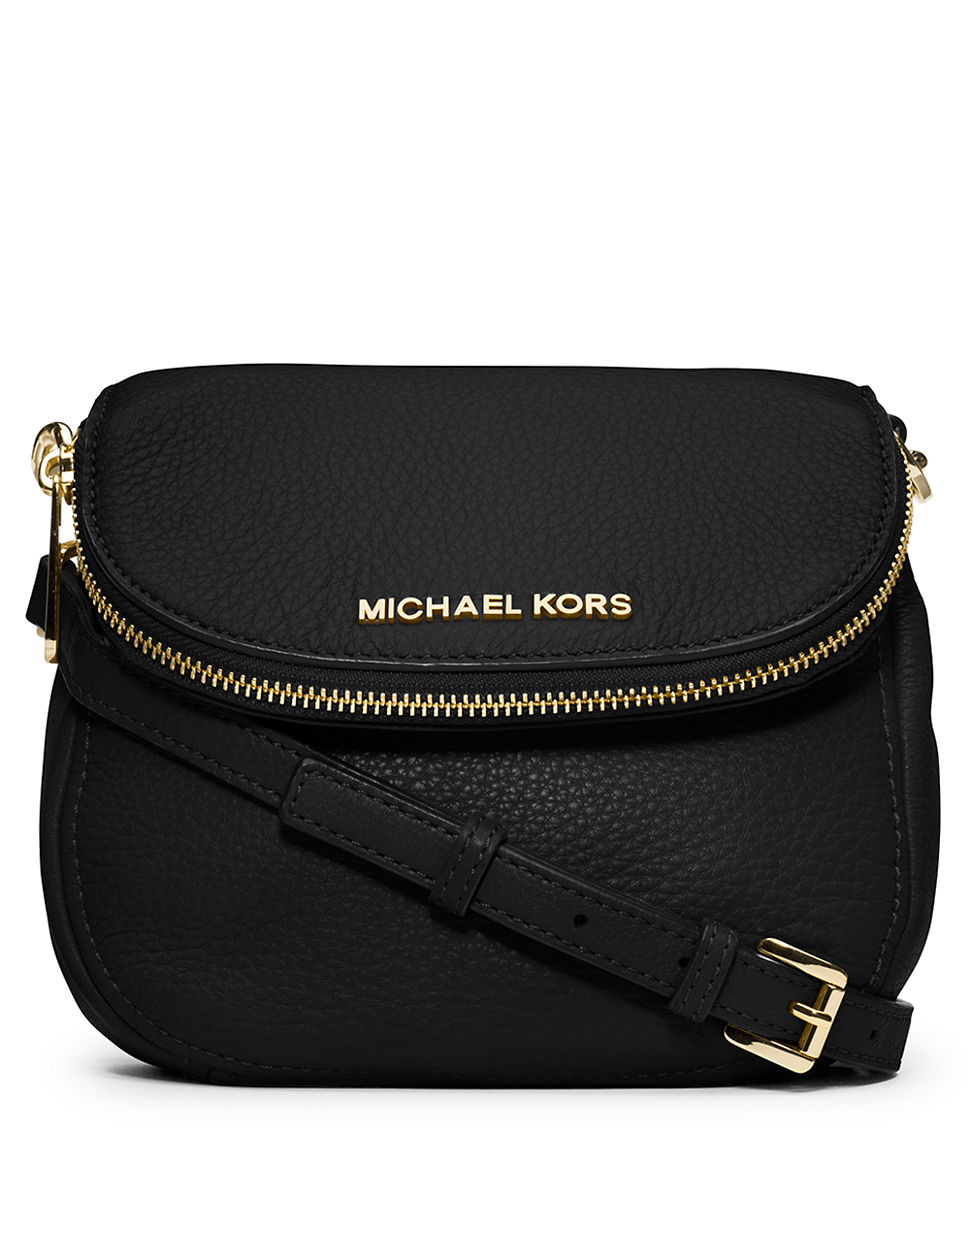 6f9648246a9b Michael Kors Bedford Flap Black Leather Crossbody Bag | Stanford ...